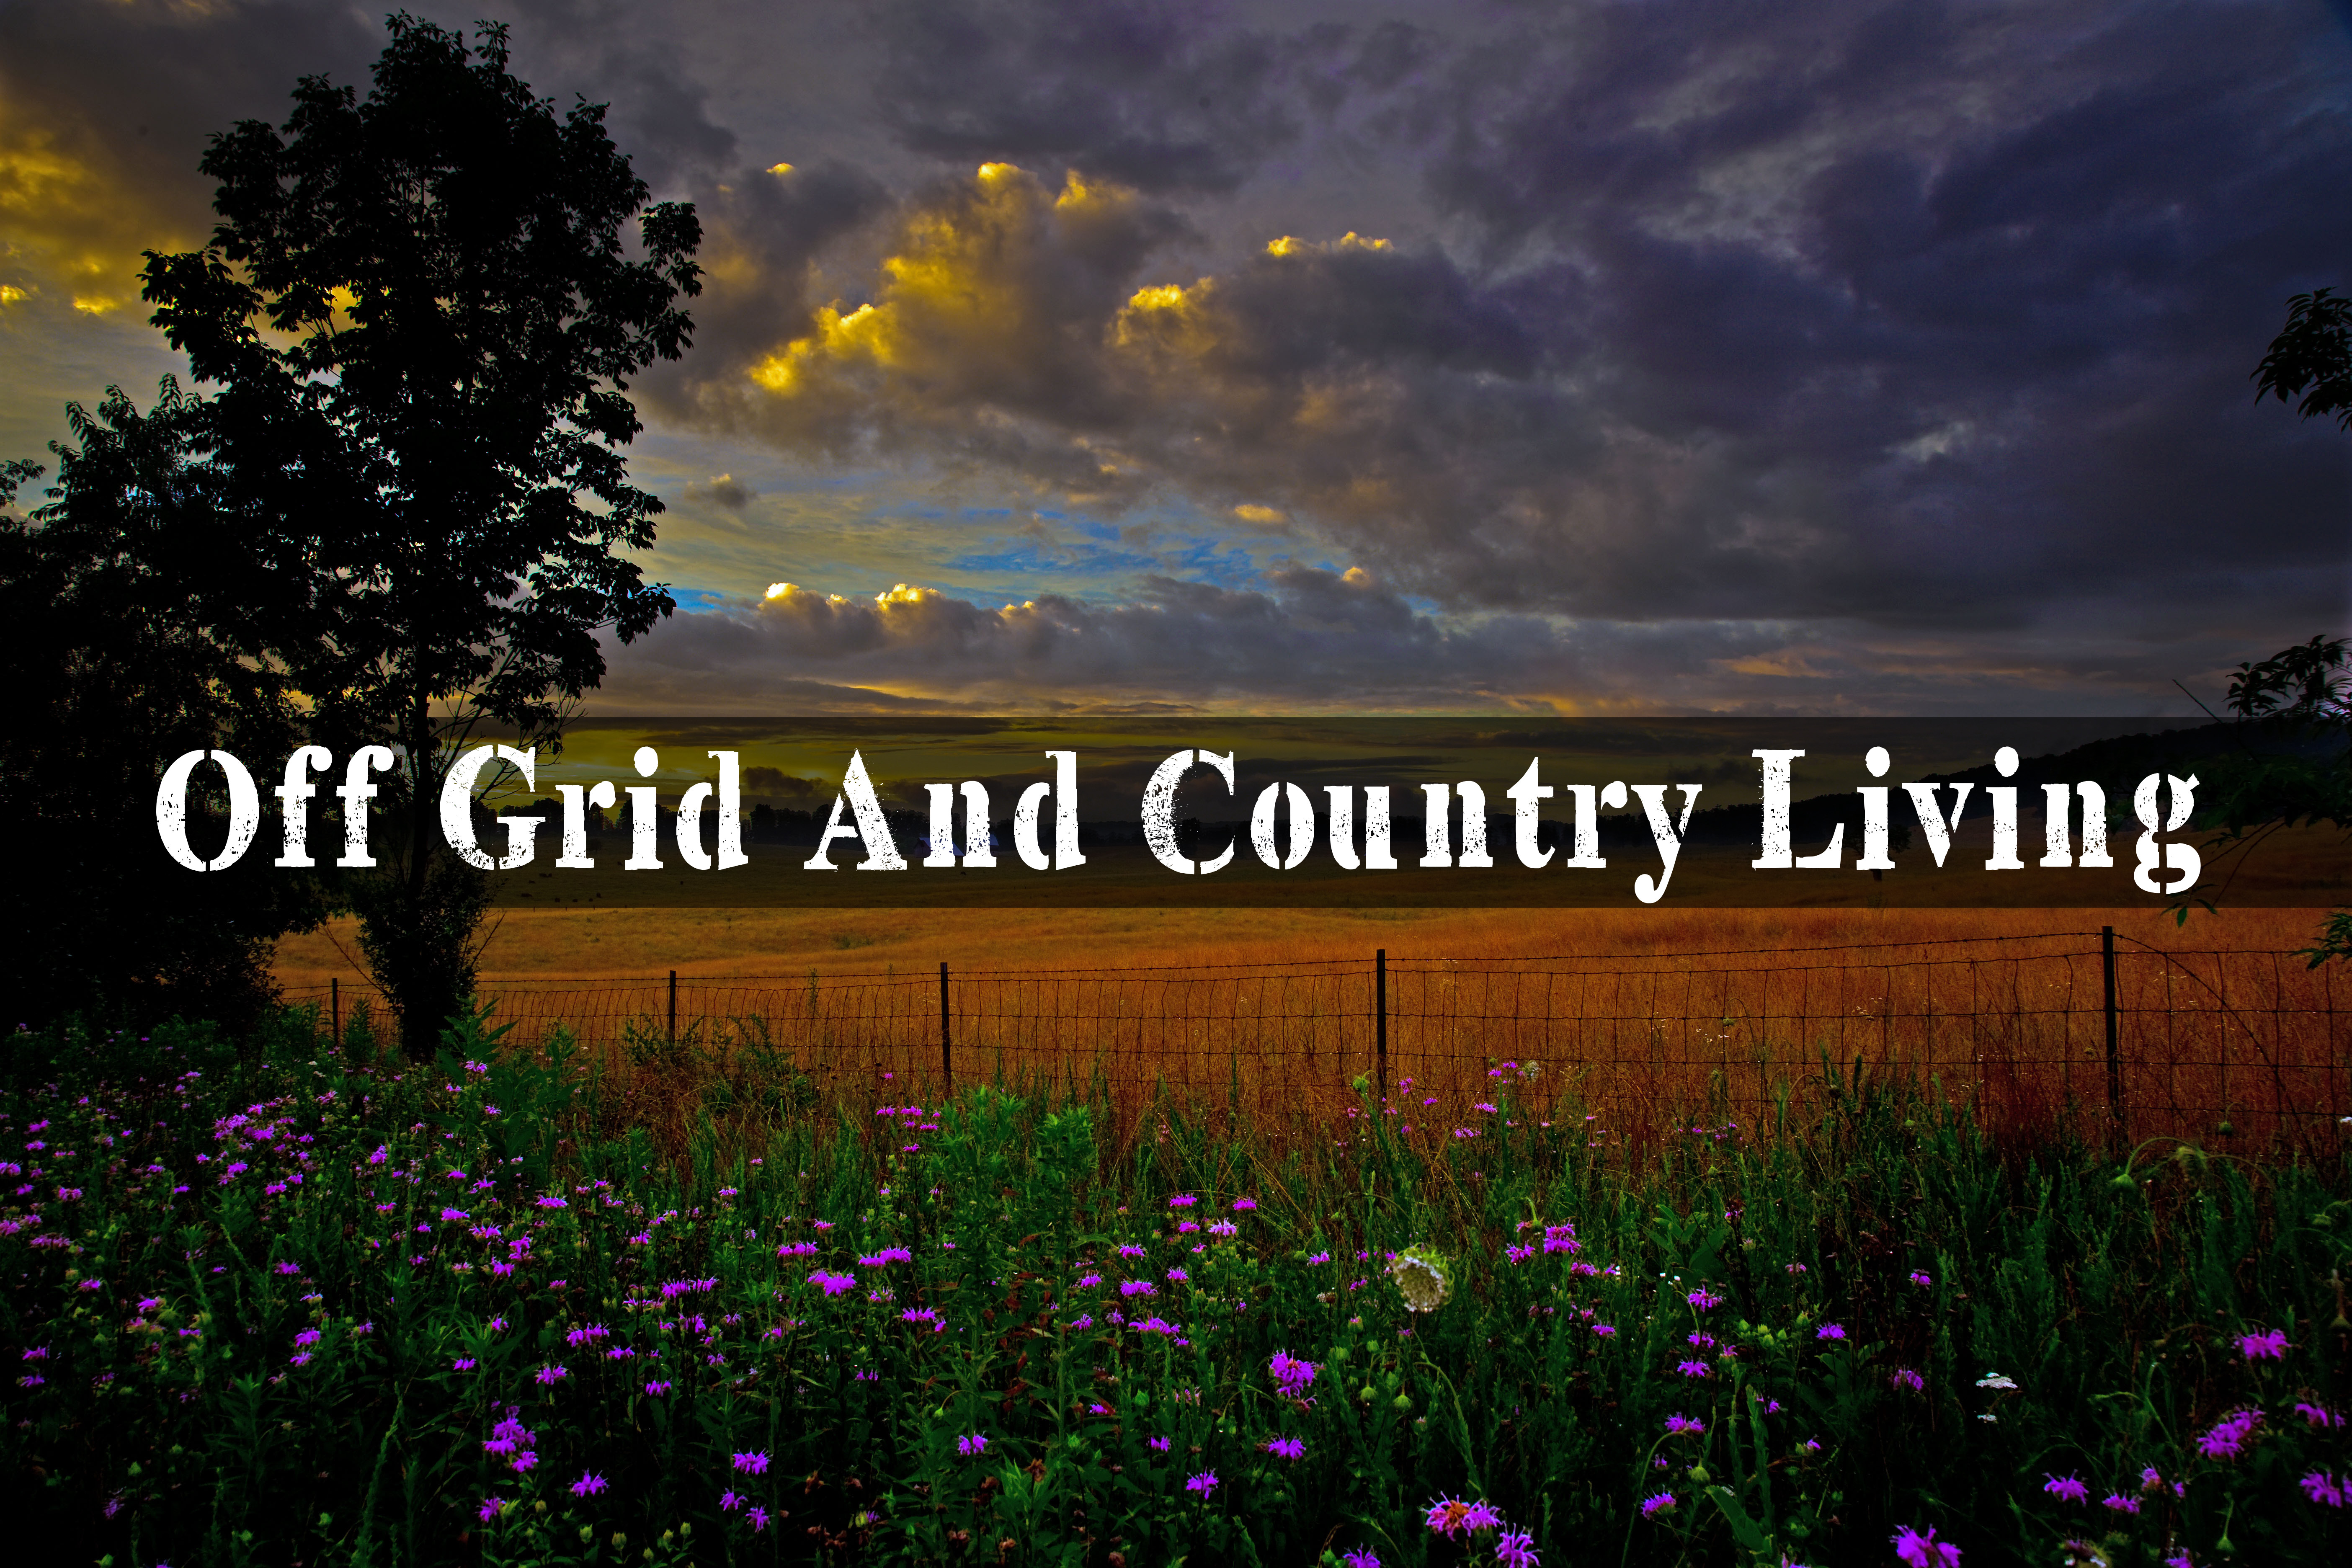 Feens Country Living : Off Grid And Country Living  episode 177